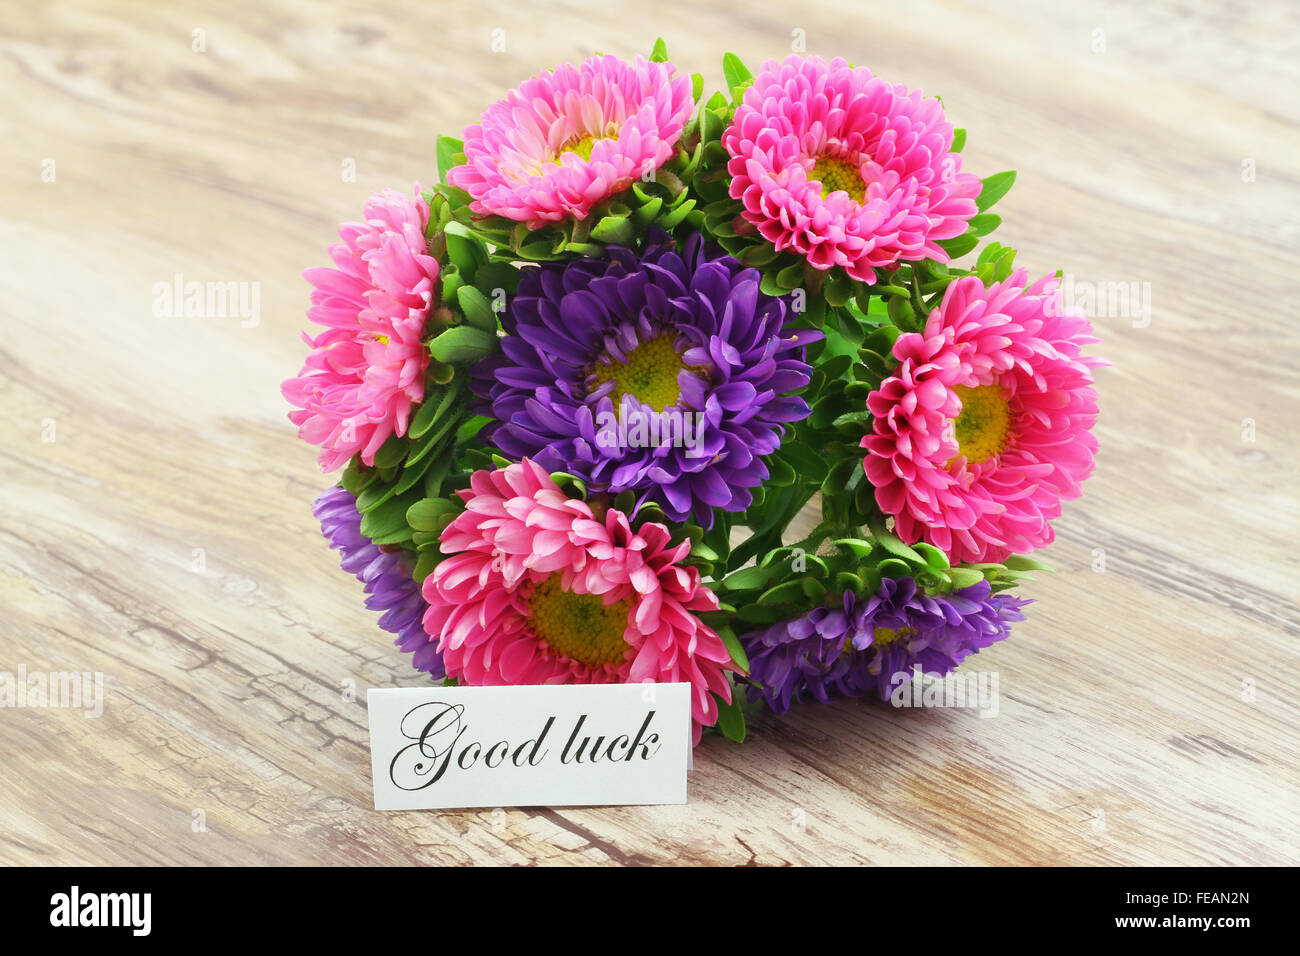 Good Luck Card With Colorful Daisy Flower Bouquet Stock Photo